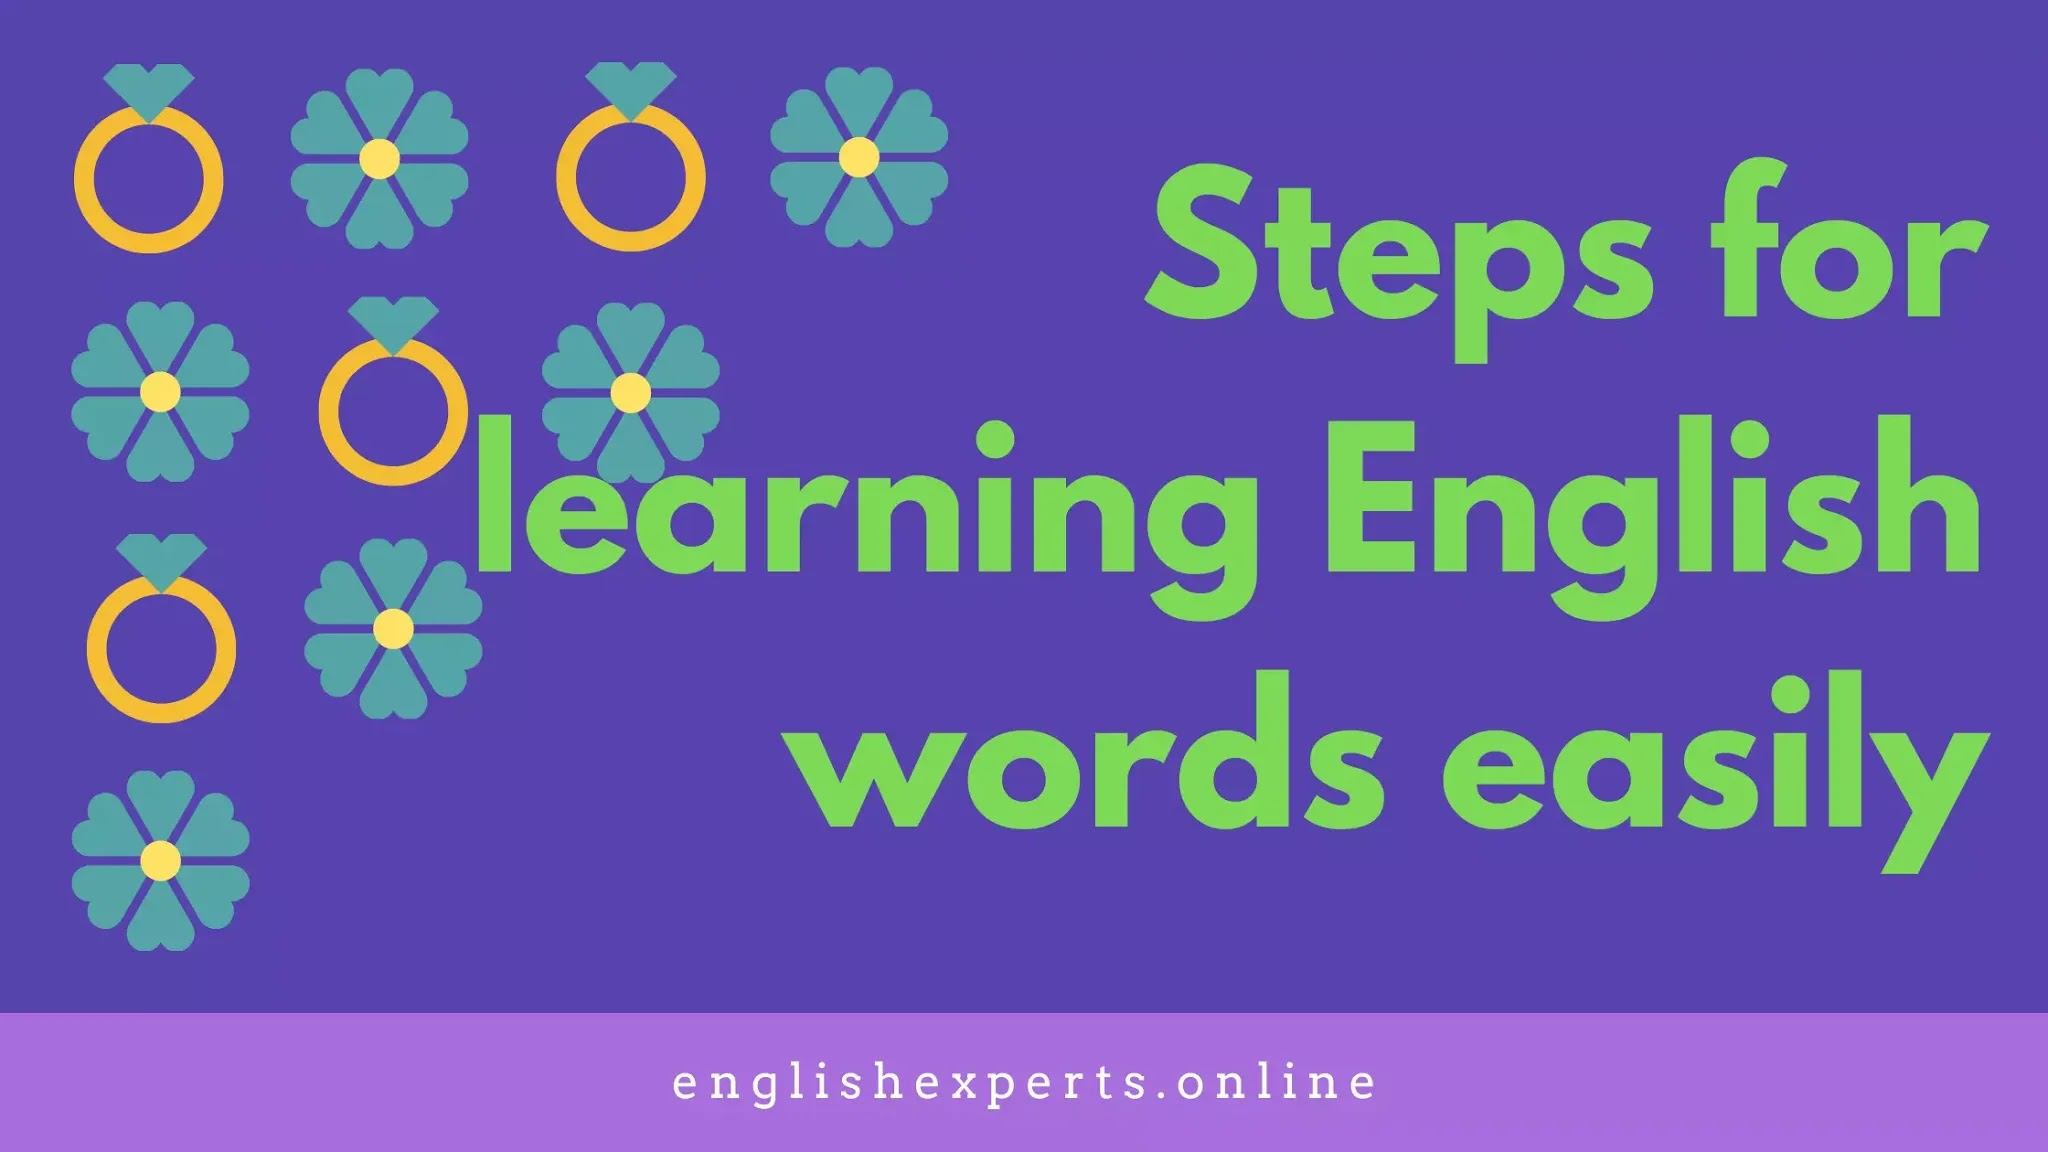 Steps for learning English words easily